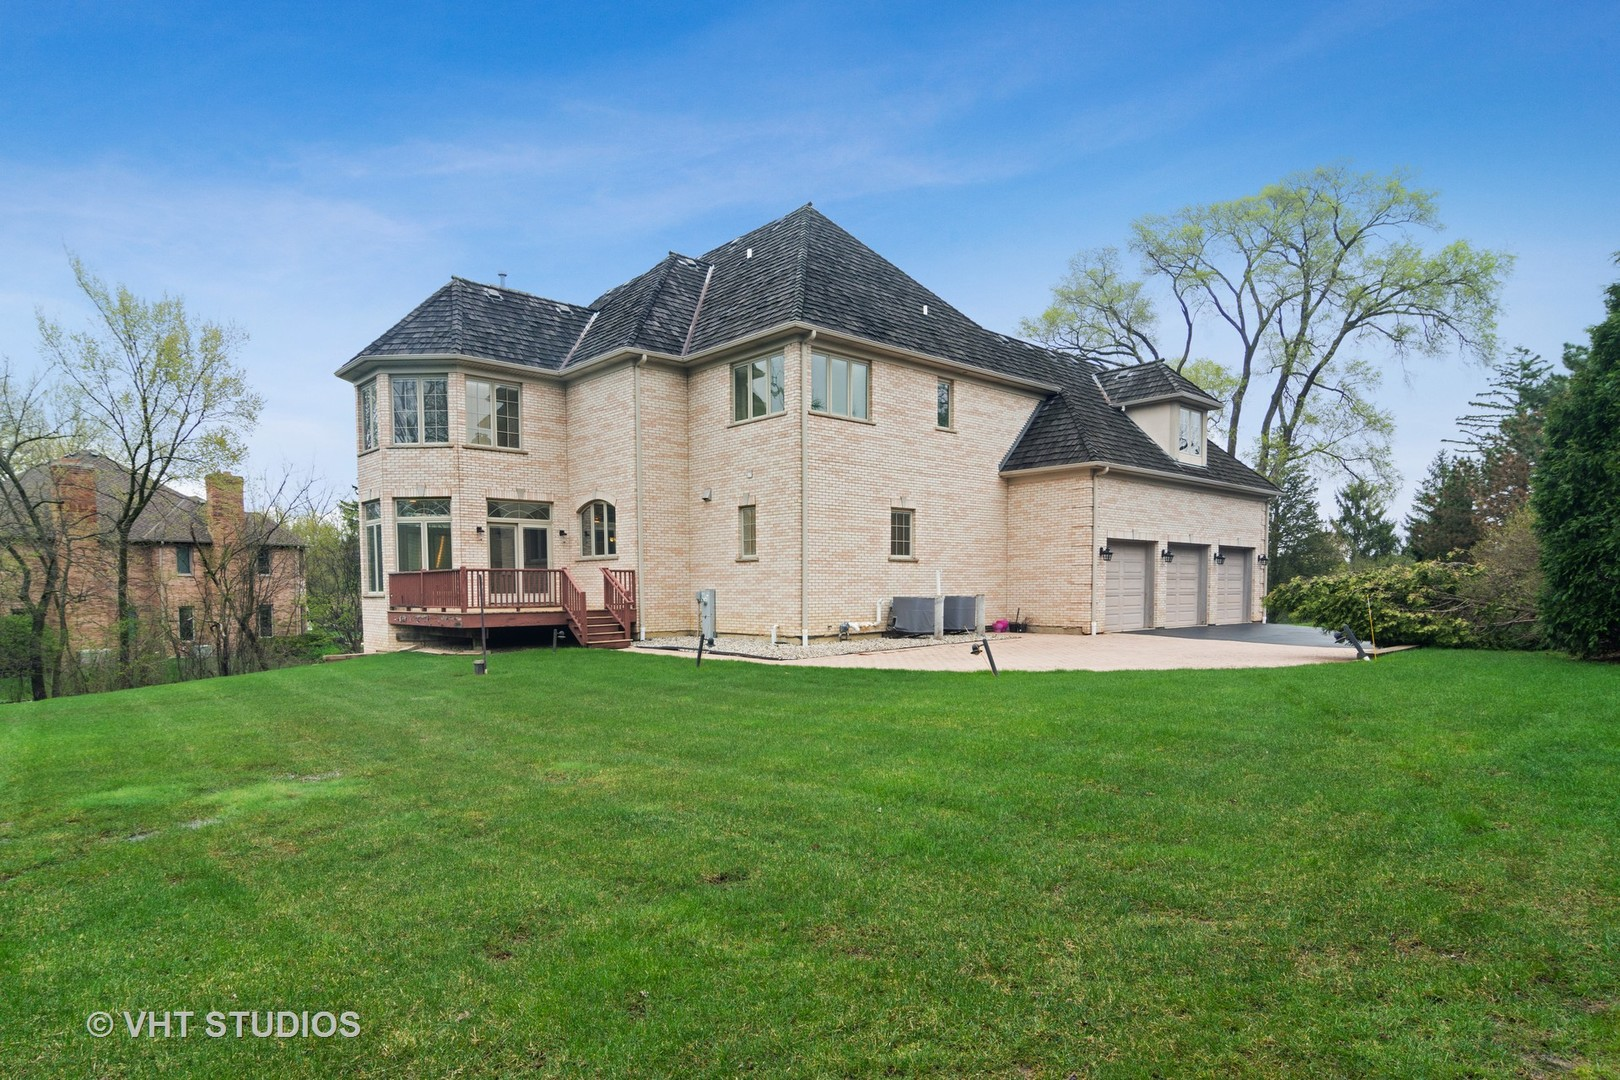 46 INVERWAY, Inverness, Illinois, 60067